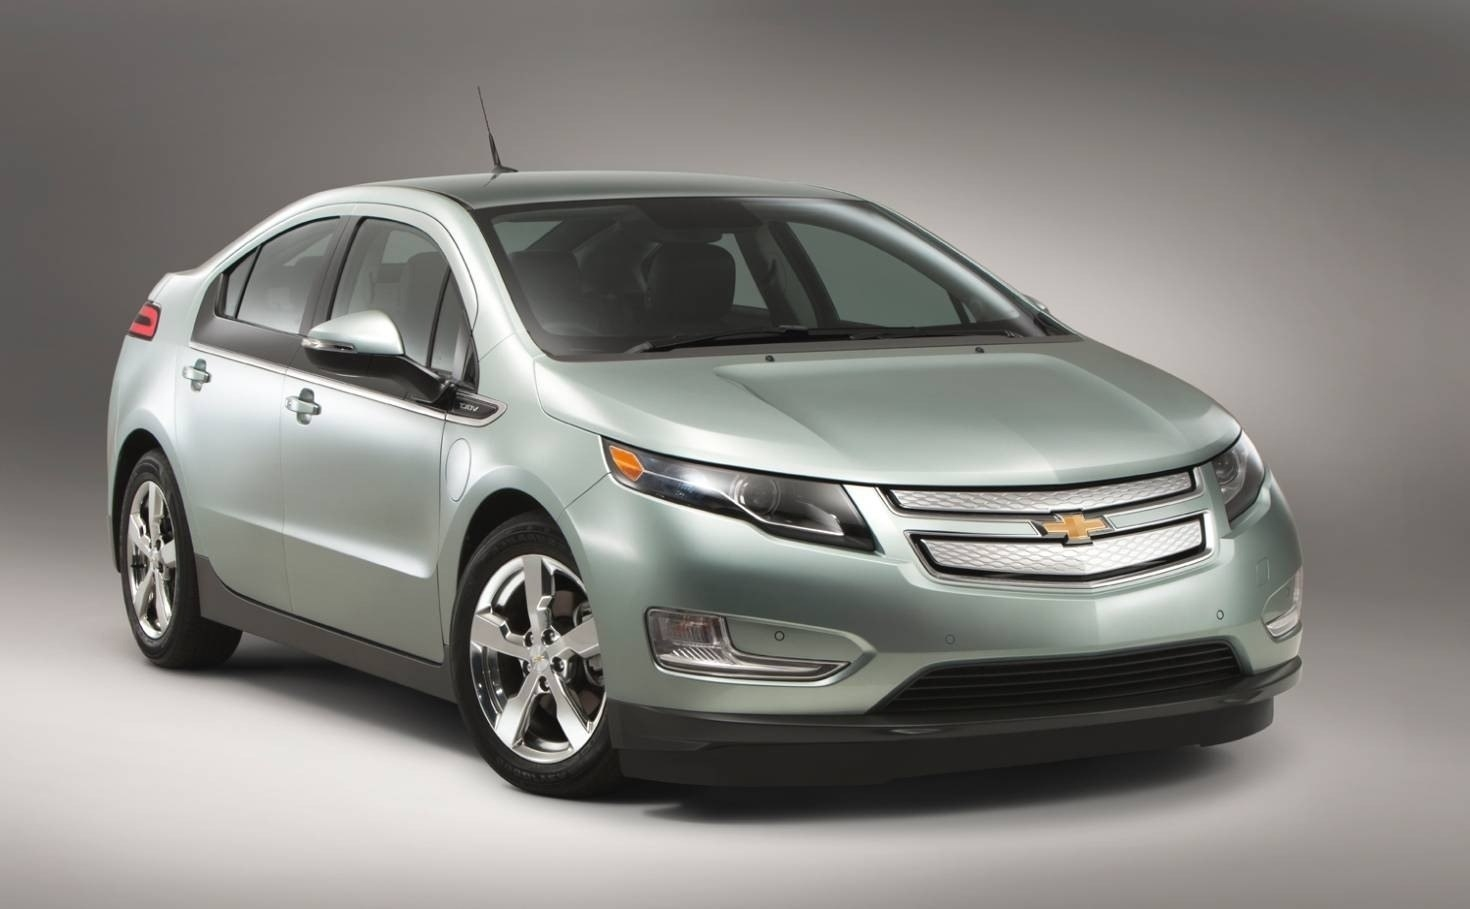 30 New 2020 Chevy Volt Review